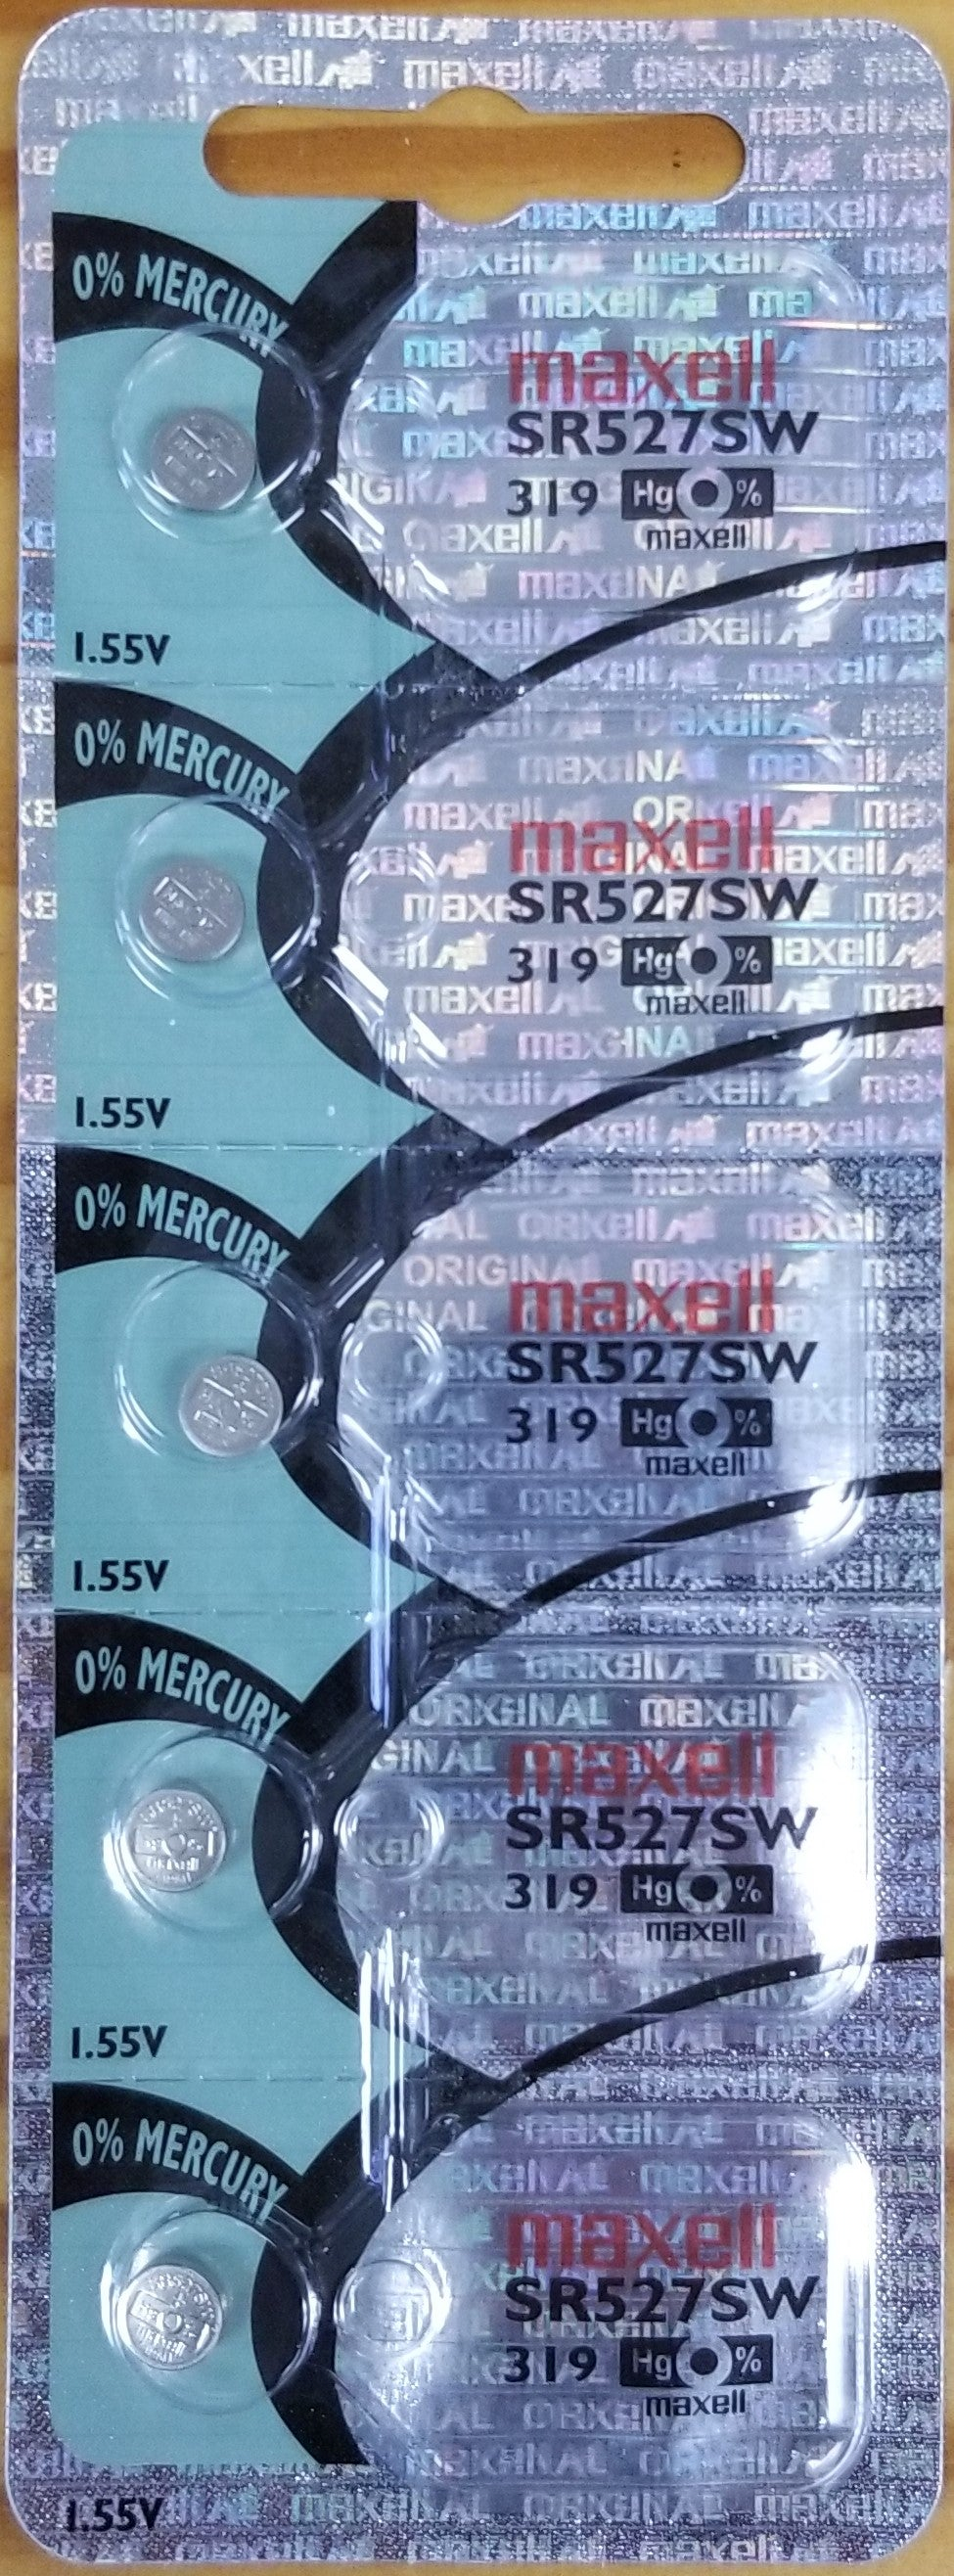 Maxell #319 SR527SW 1.55v Silver Oxide Battery - Tear Strip of 5